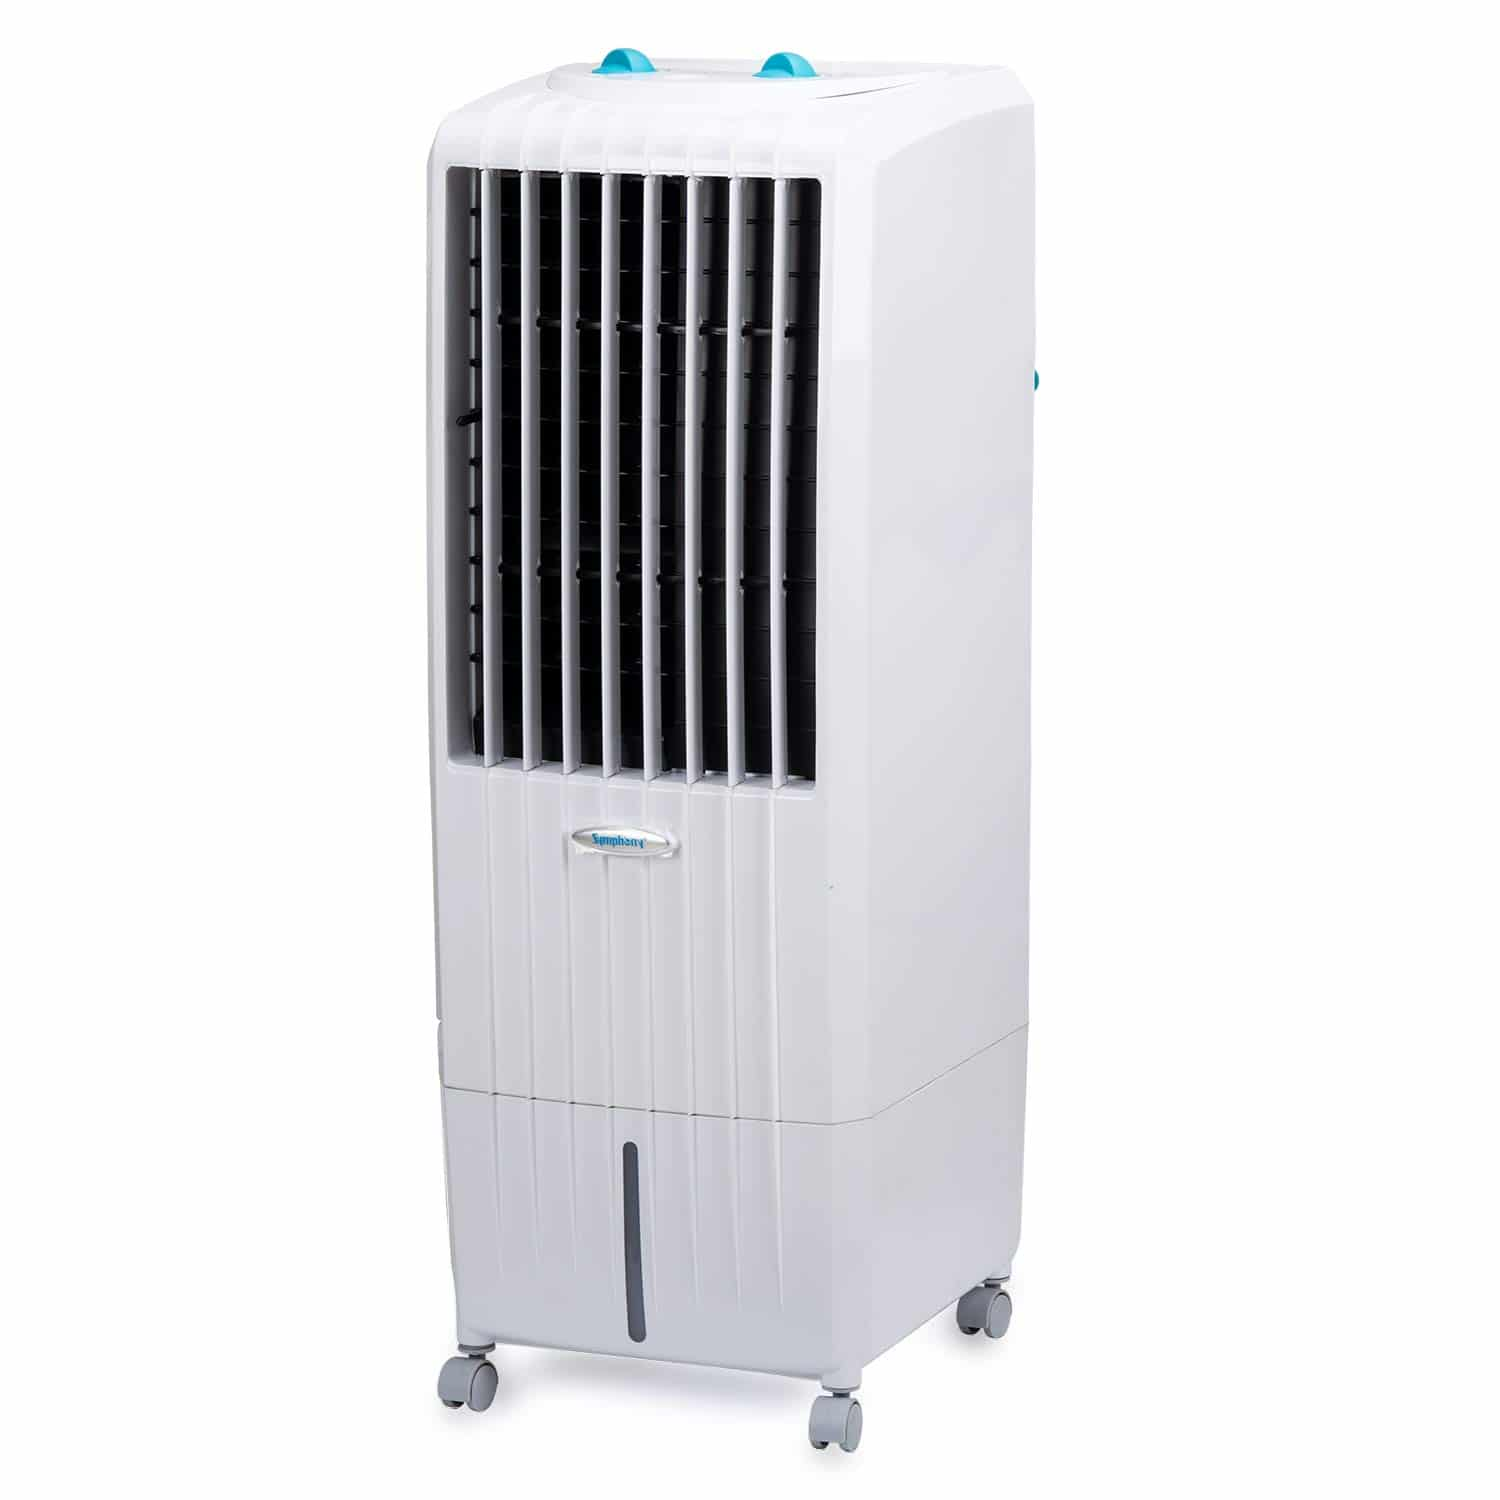 Symphony Diet 12T Personal Tower Air Cooler